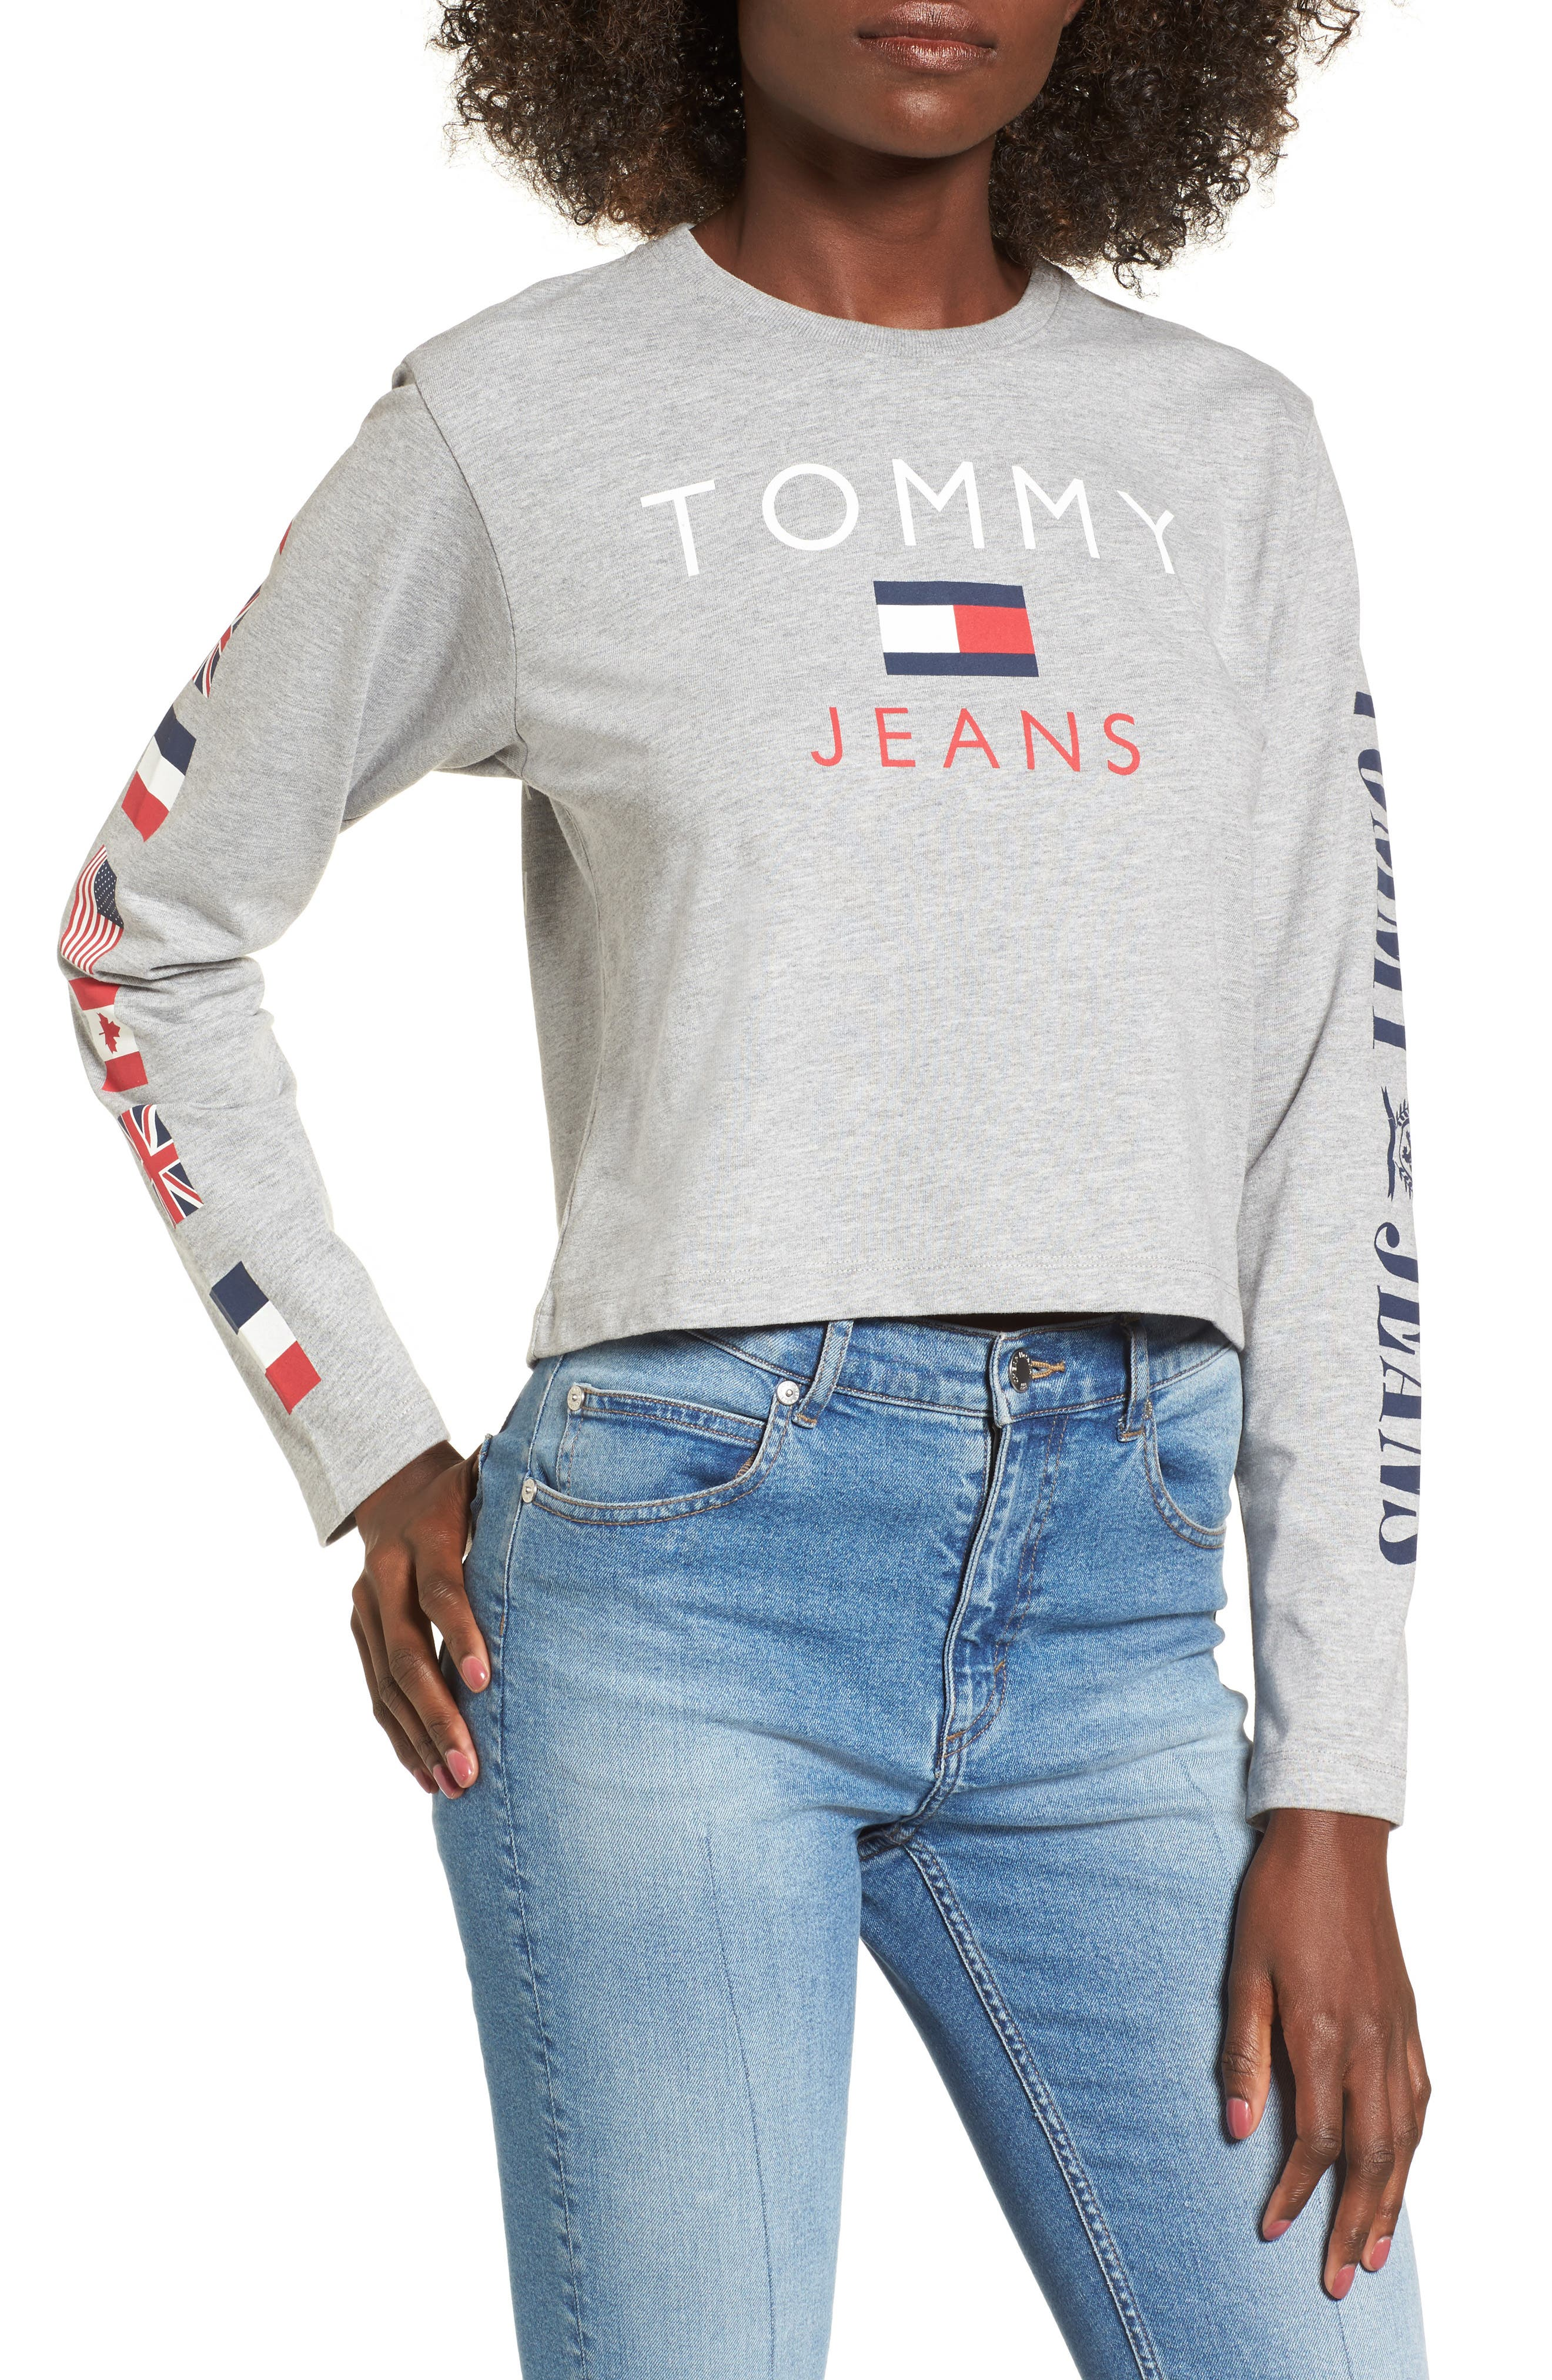 Main Image - TOMMY JEANS '90s Logo Tee